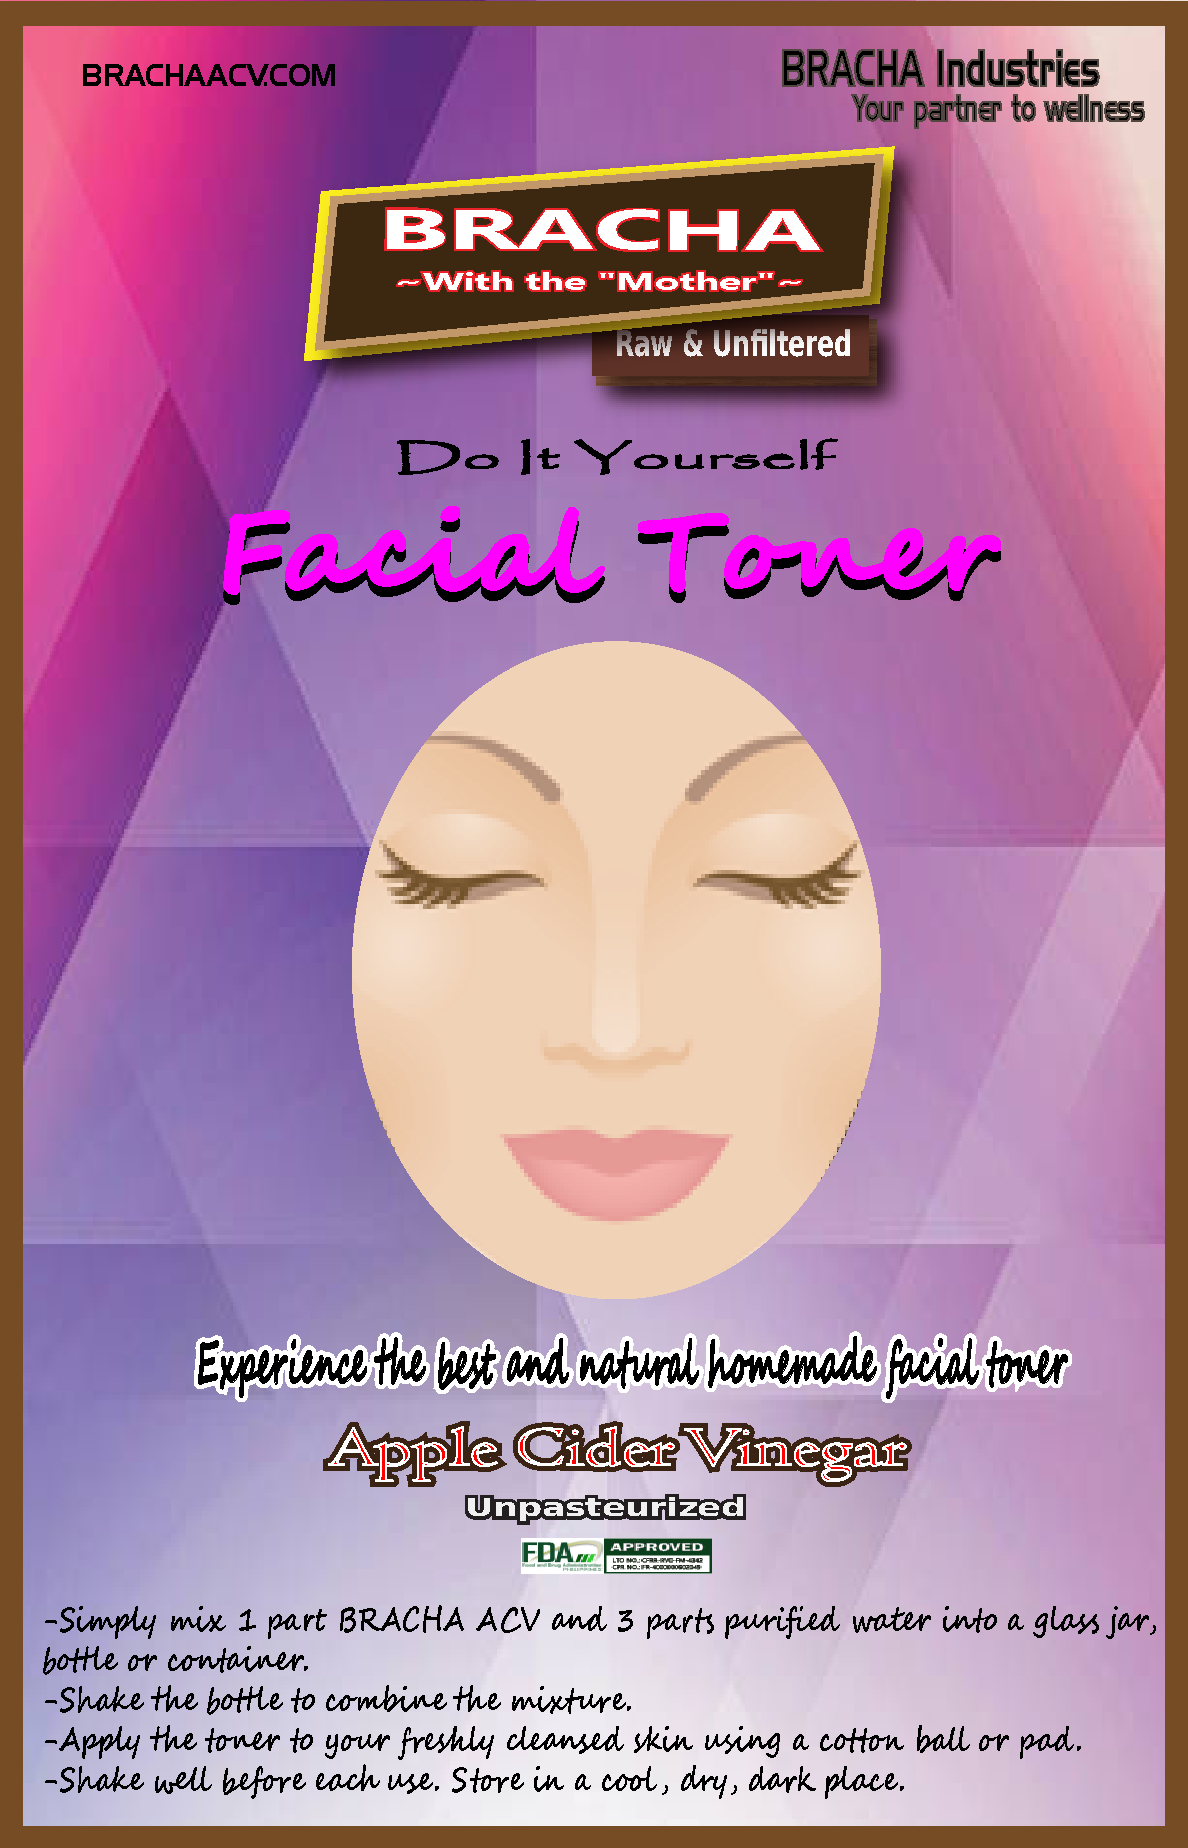 Do it yourself and experience the best and natural homemade facial do it yourself and experience the best and natural homemade facial toner with bracha apple cider solutioingenieria Images